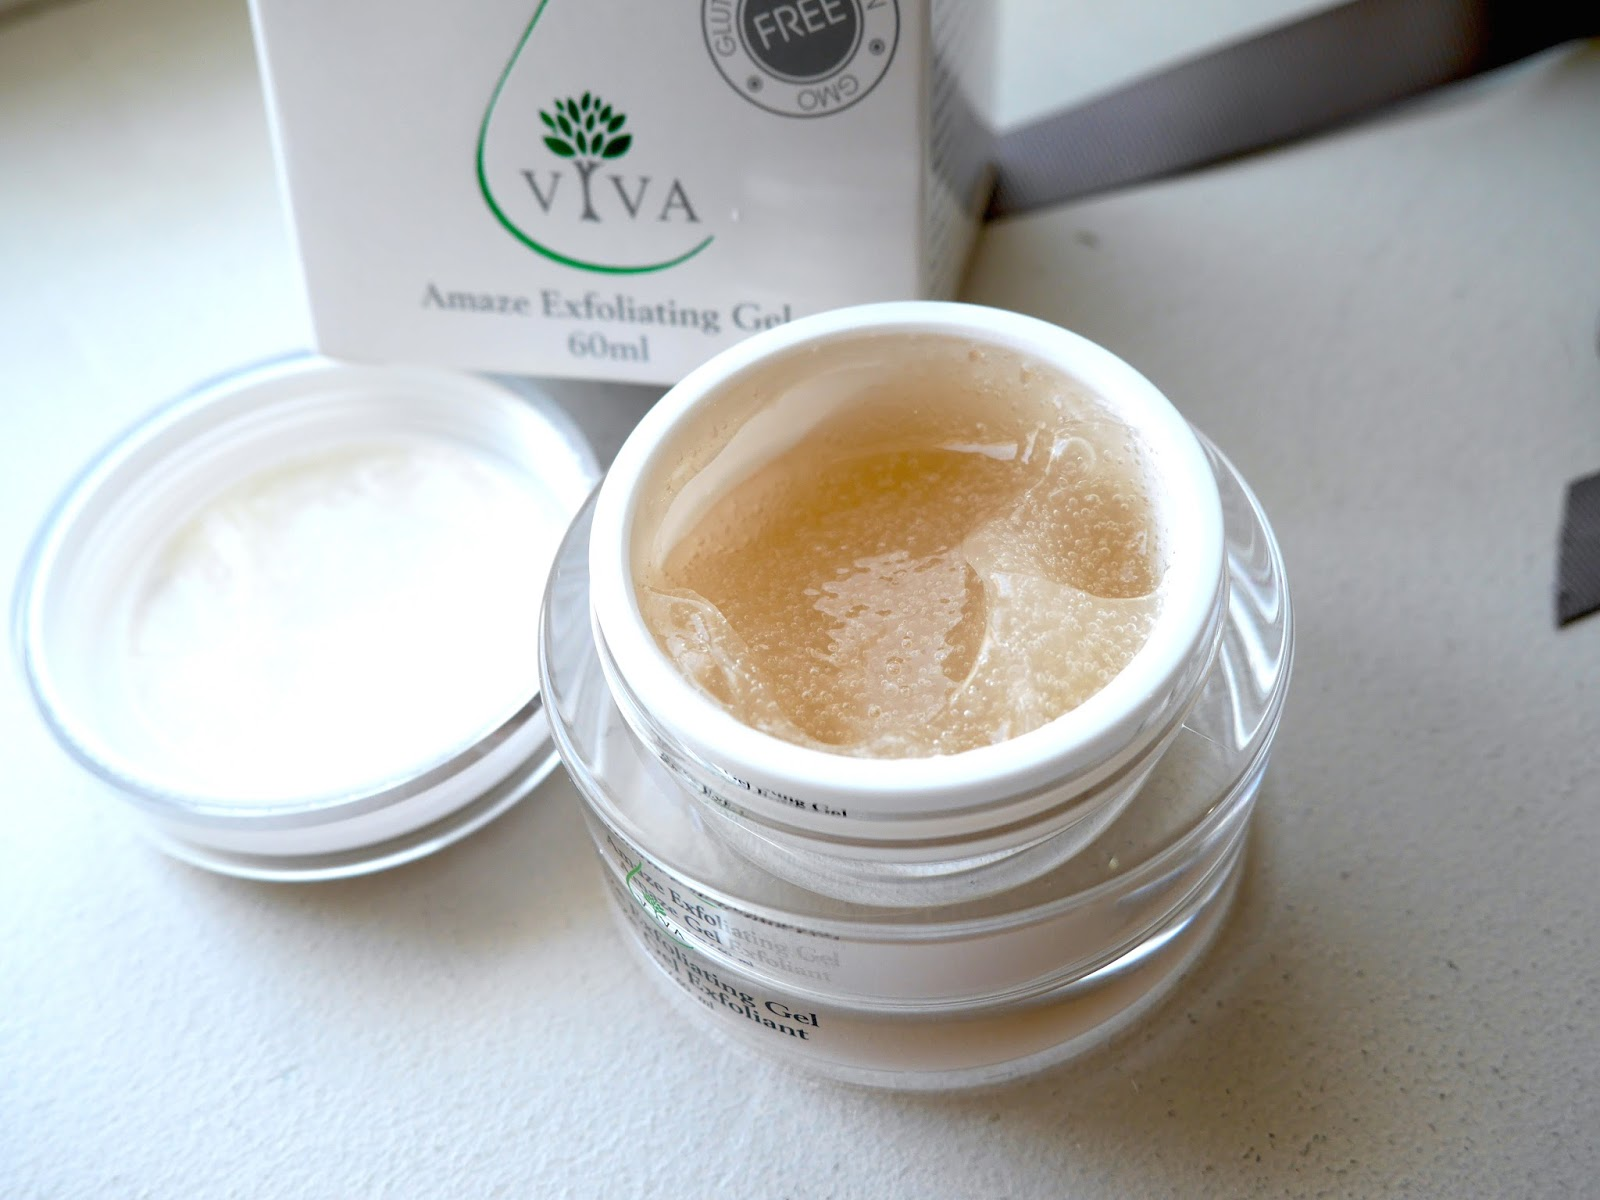 viva health skincare amaze exfoliating gel review